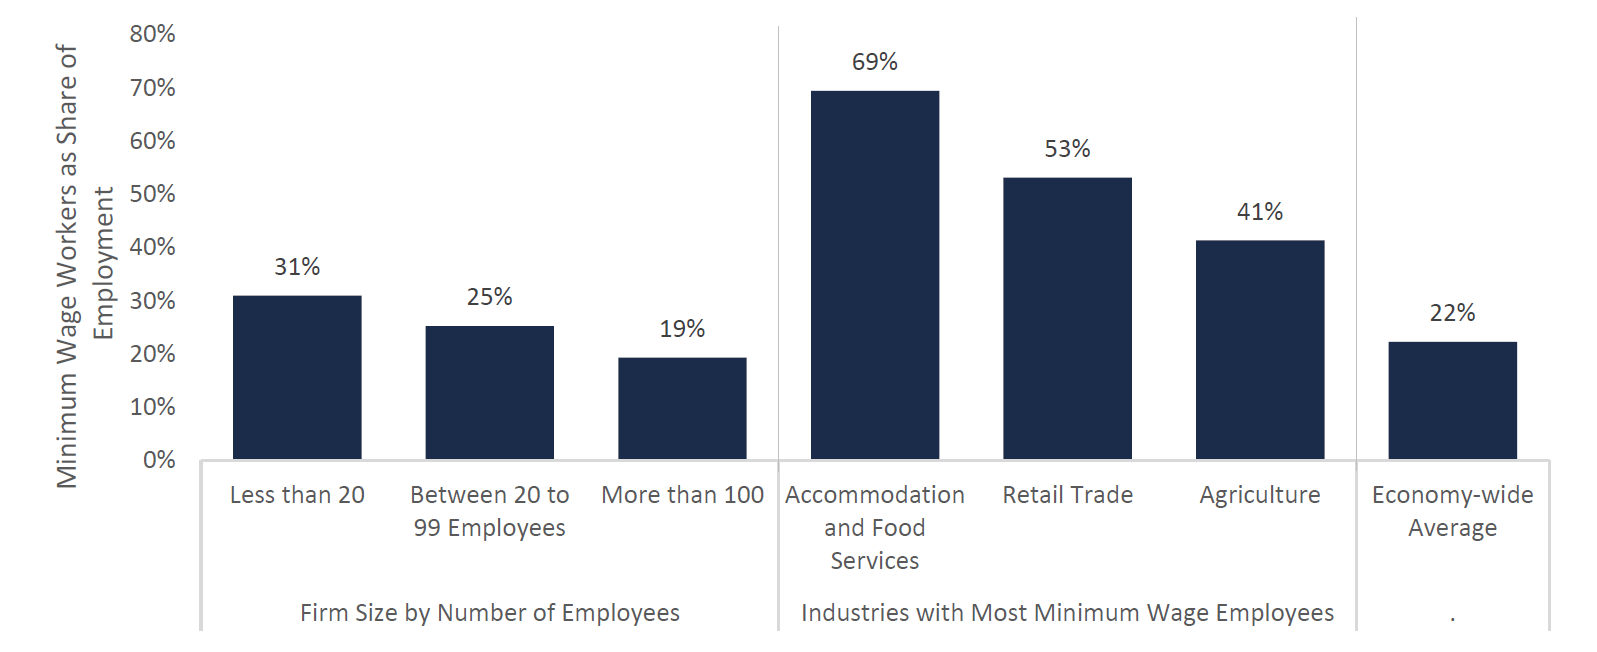 Minimum Wage Workers ($15 per hour) as Share of Total Employment by Firm Size and Industry